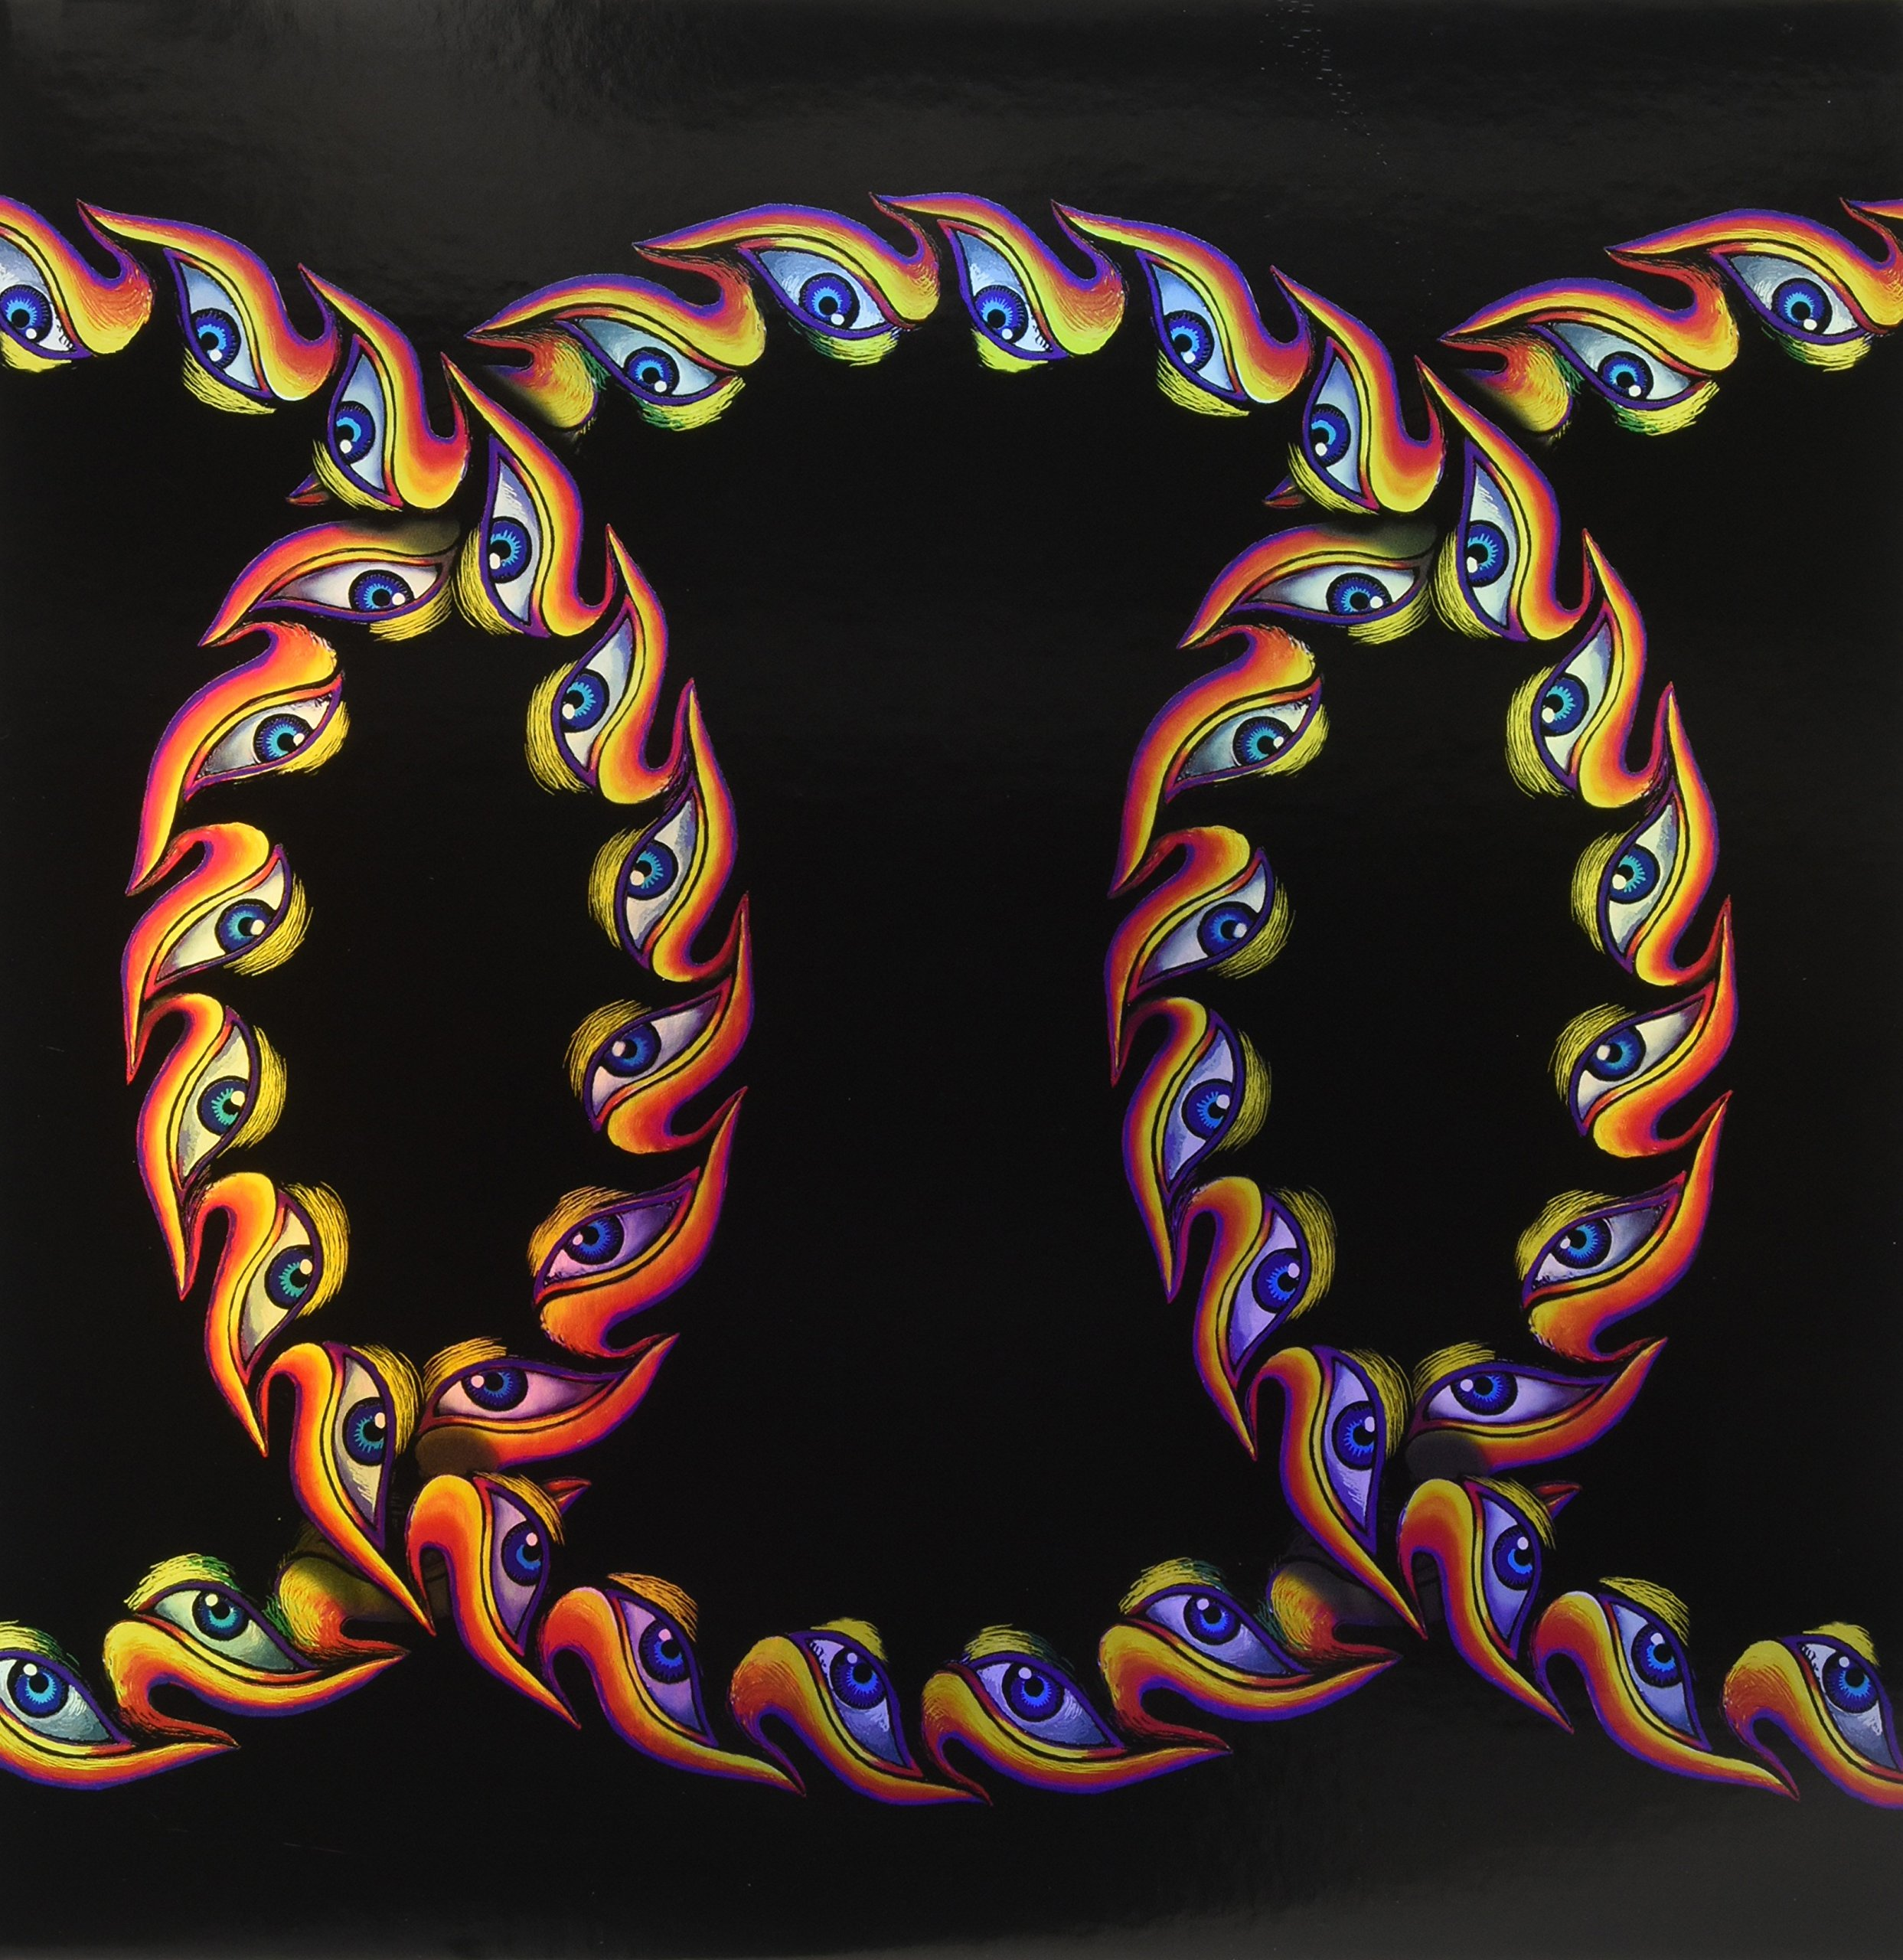 Lateralus [Vinyl] by Legacy